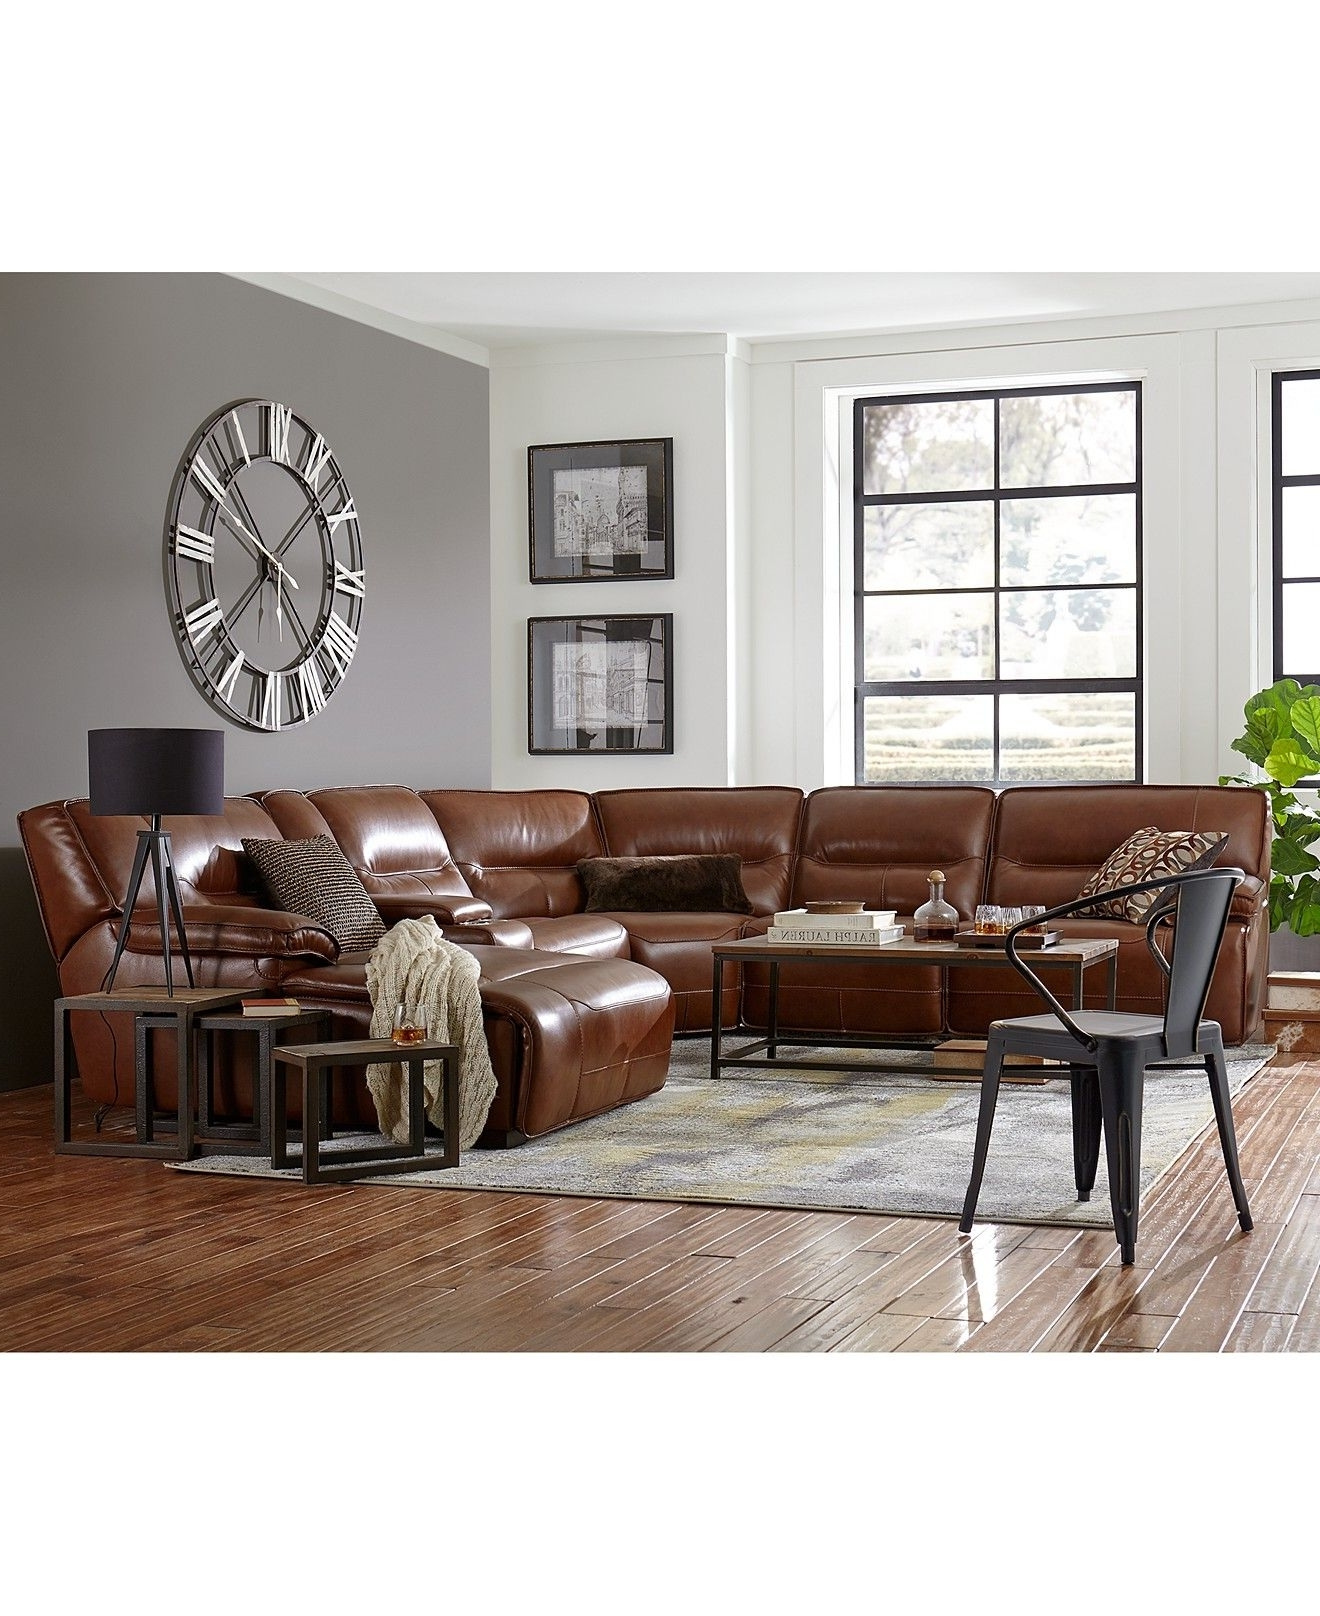 Preferred Macys Leather Sectional Sofas With Regard To Closeout! Beckett Leather Power Reclining Sectional Sofa (View 7 of 20)